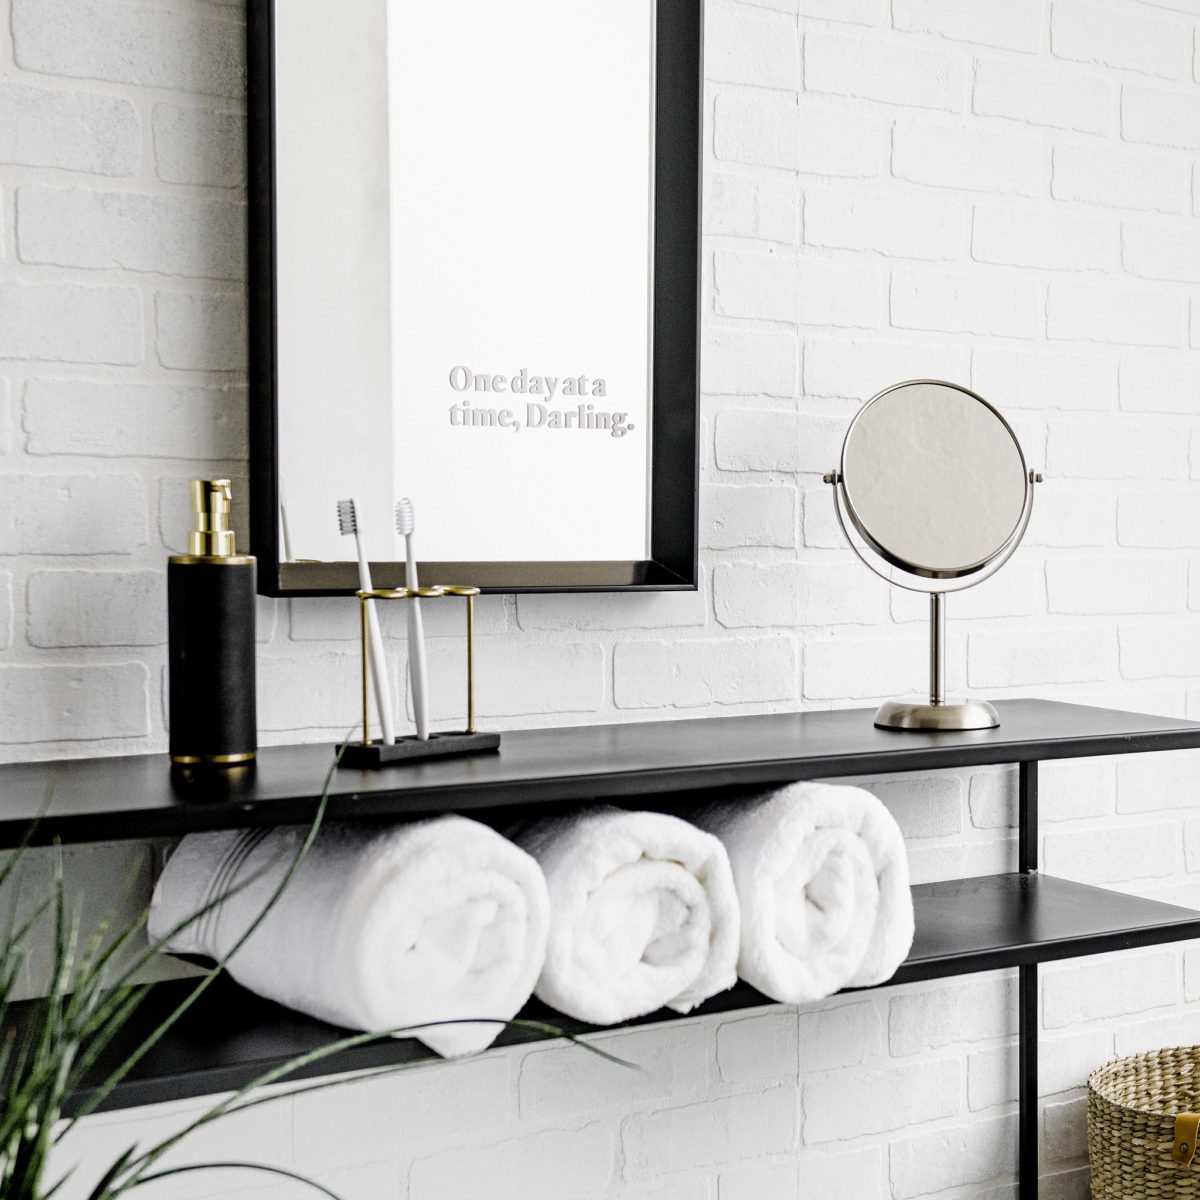 A bathroom dresser with towels, a mirror, hand soap, towels and a mirror on the wall